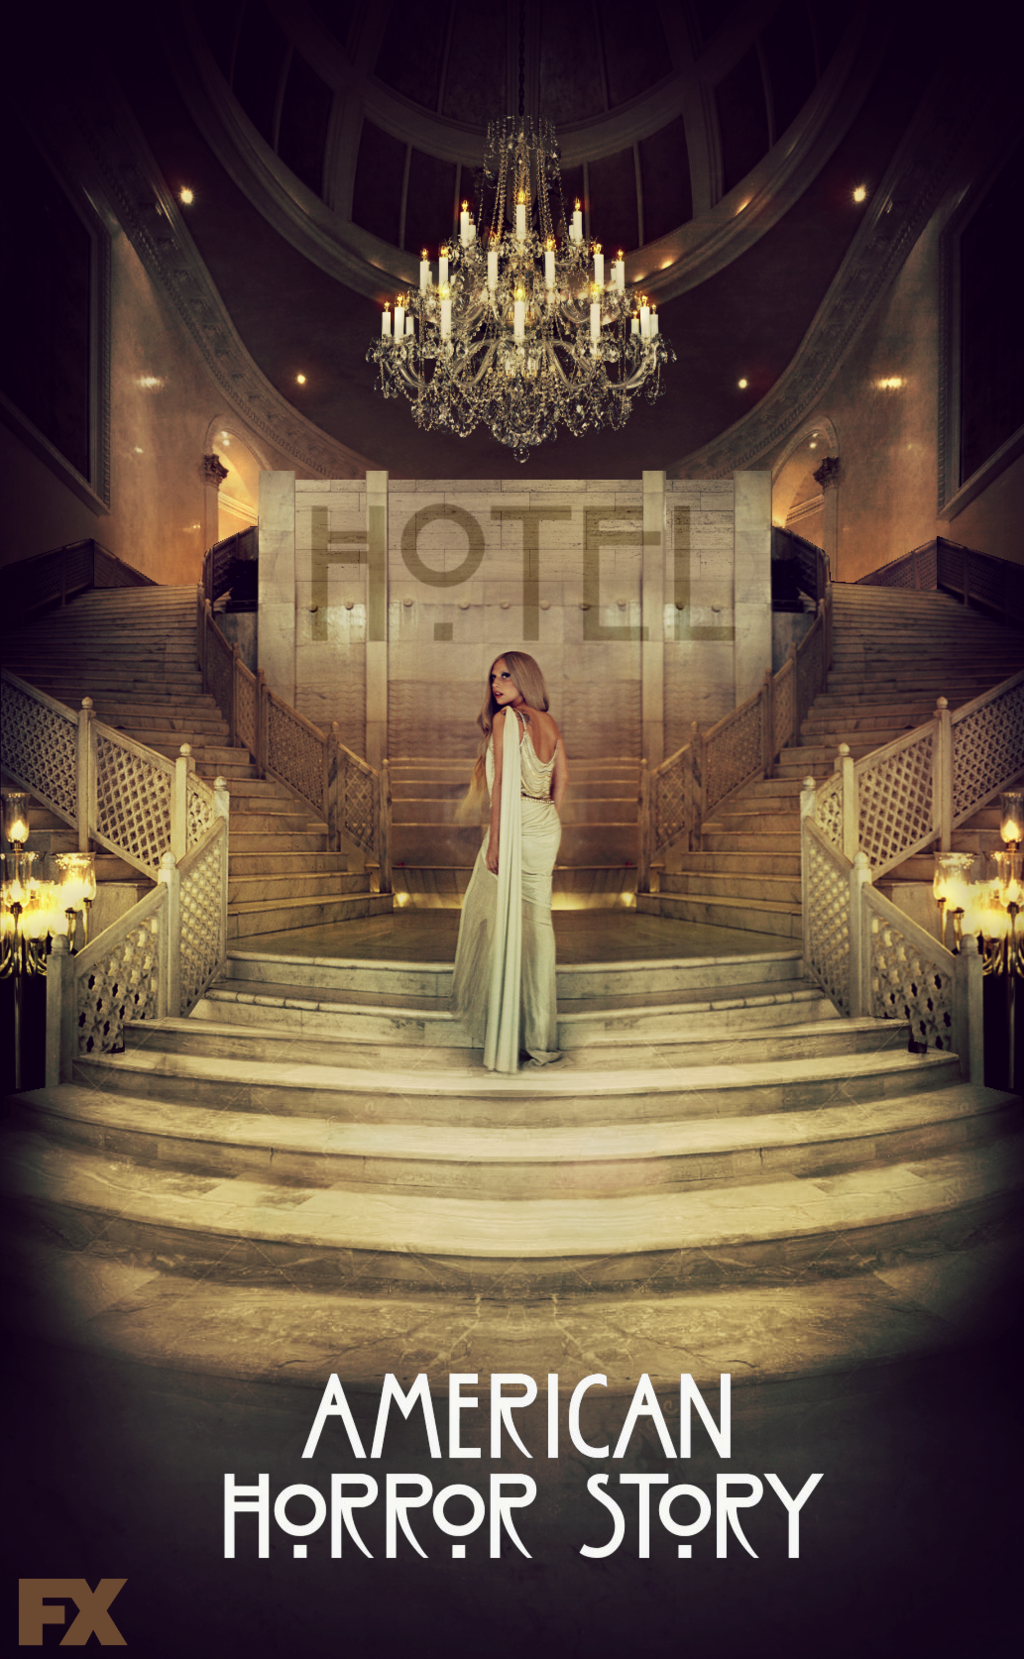 Free Download American Horror Story Hotel Lady Gaga By Panchecco